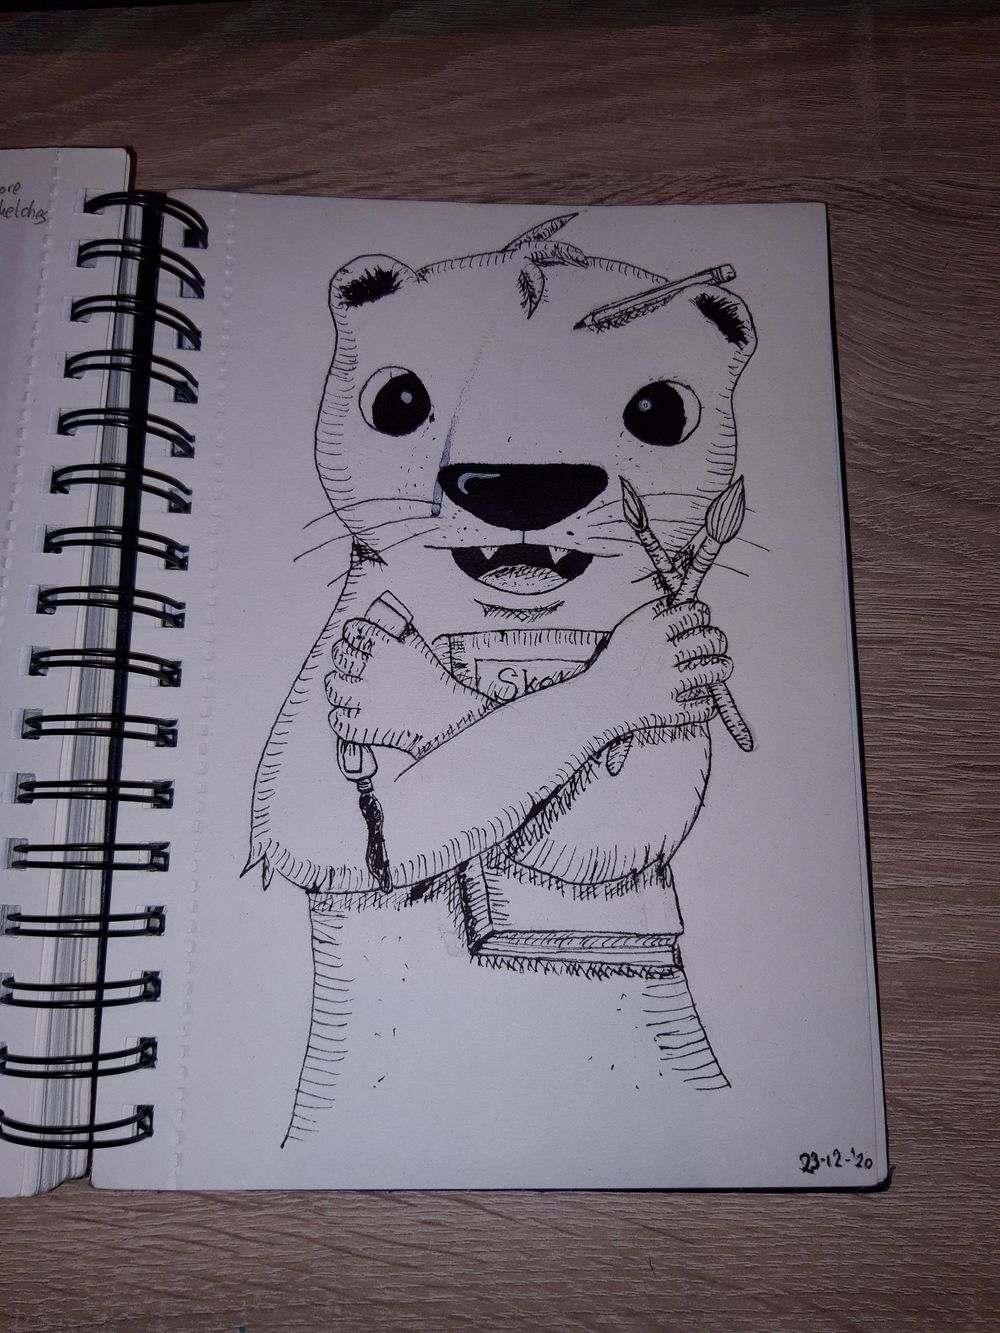 Inked creative otter - image 2 - student project